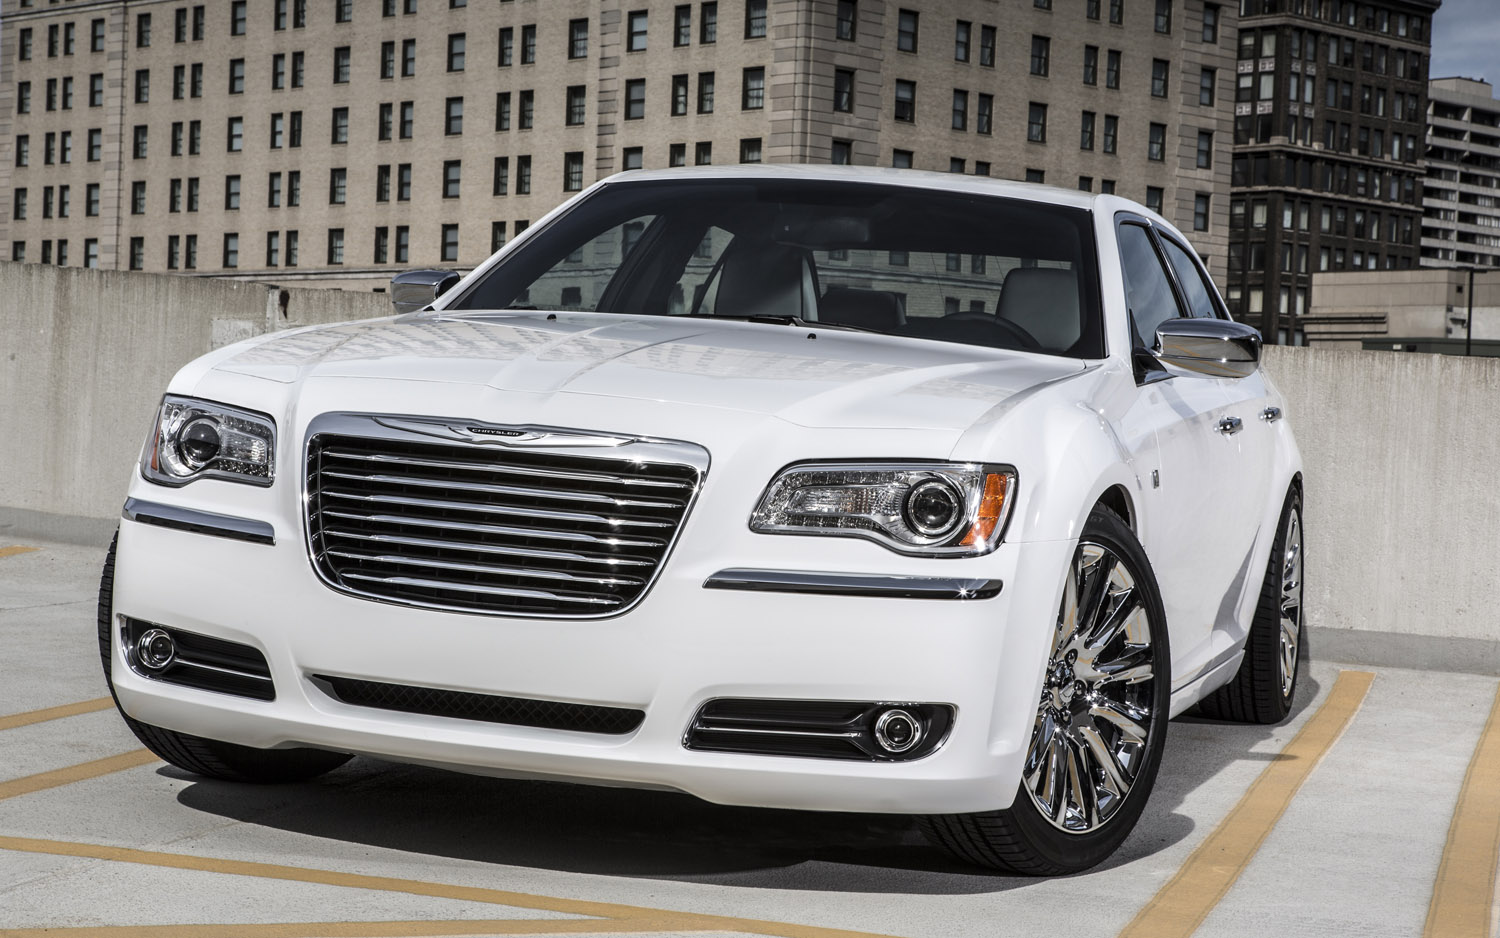 medium resolution of 2013 chrysler 300 motown special edition celebrates detroit music